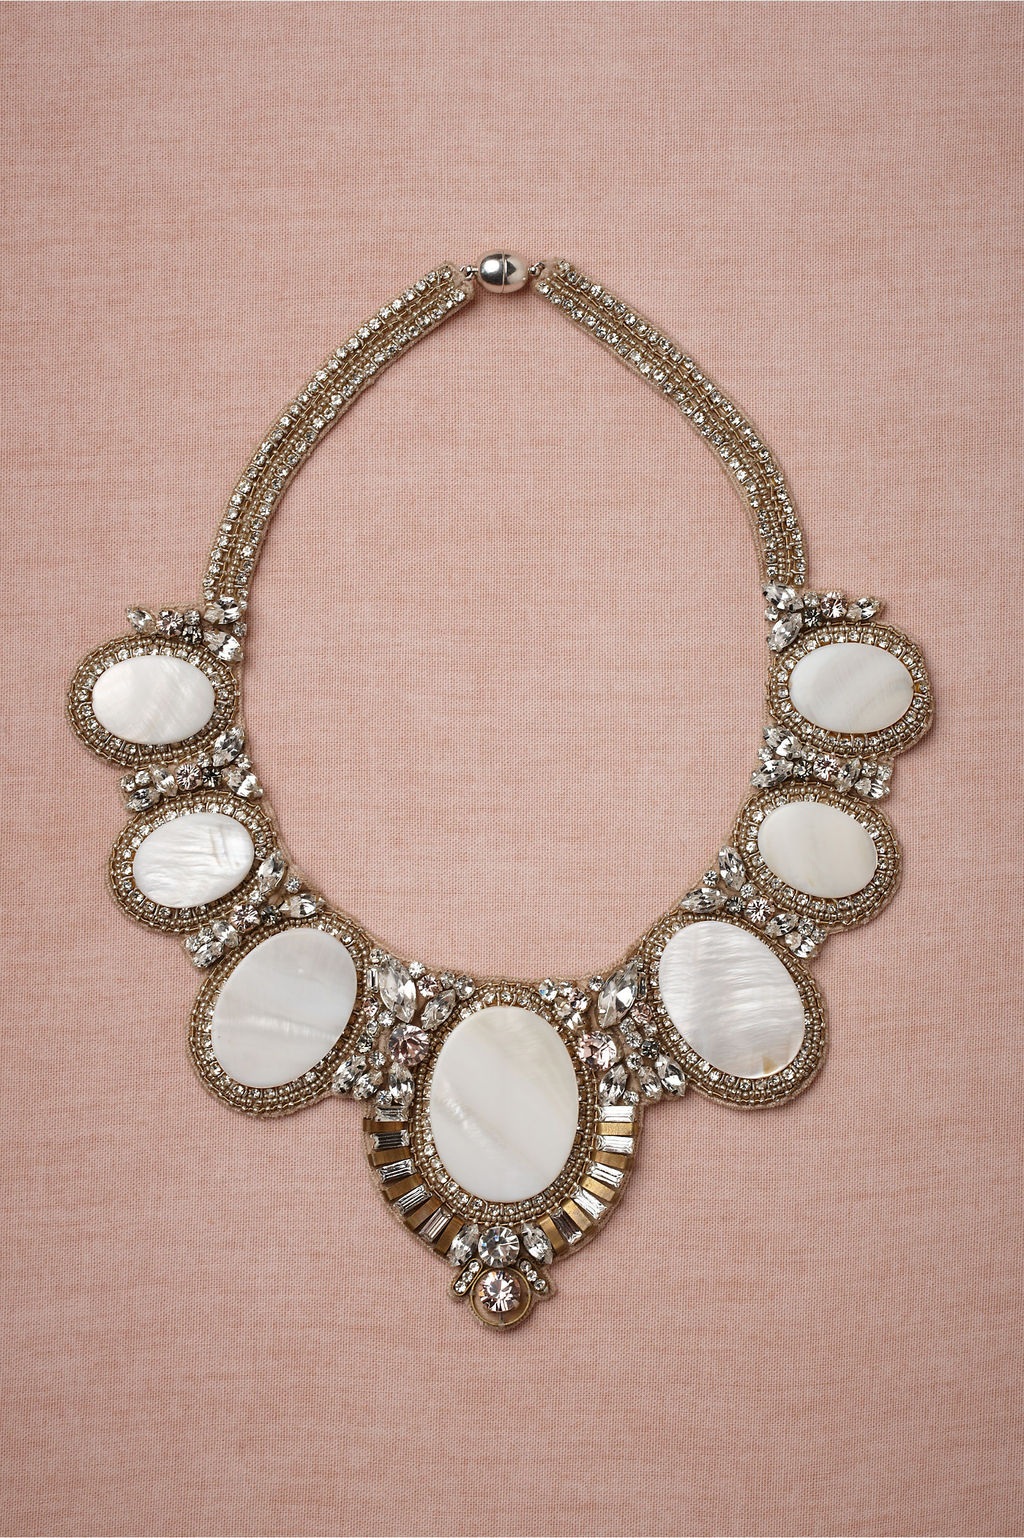 Bhldn-bridal-gowns-wedding-jewelry-statement-necklace-1.full